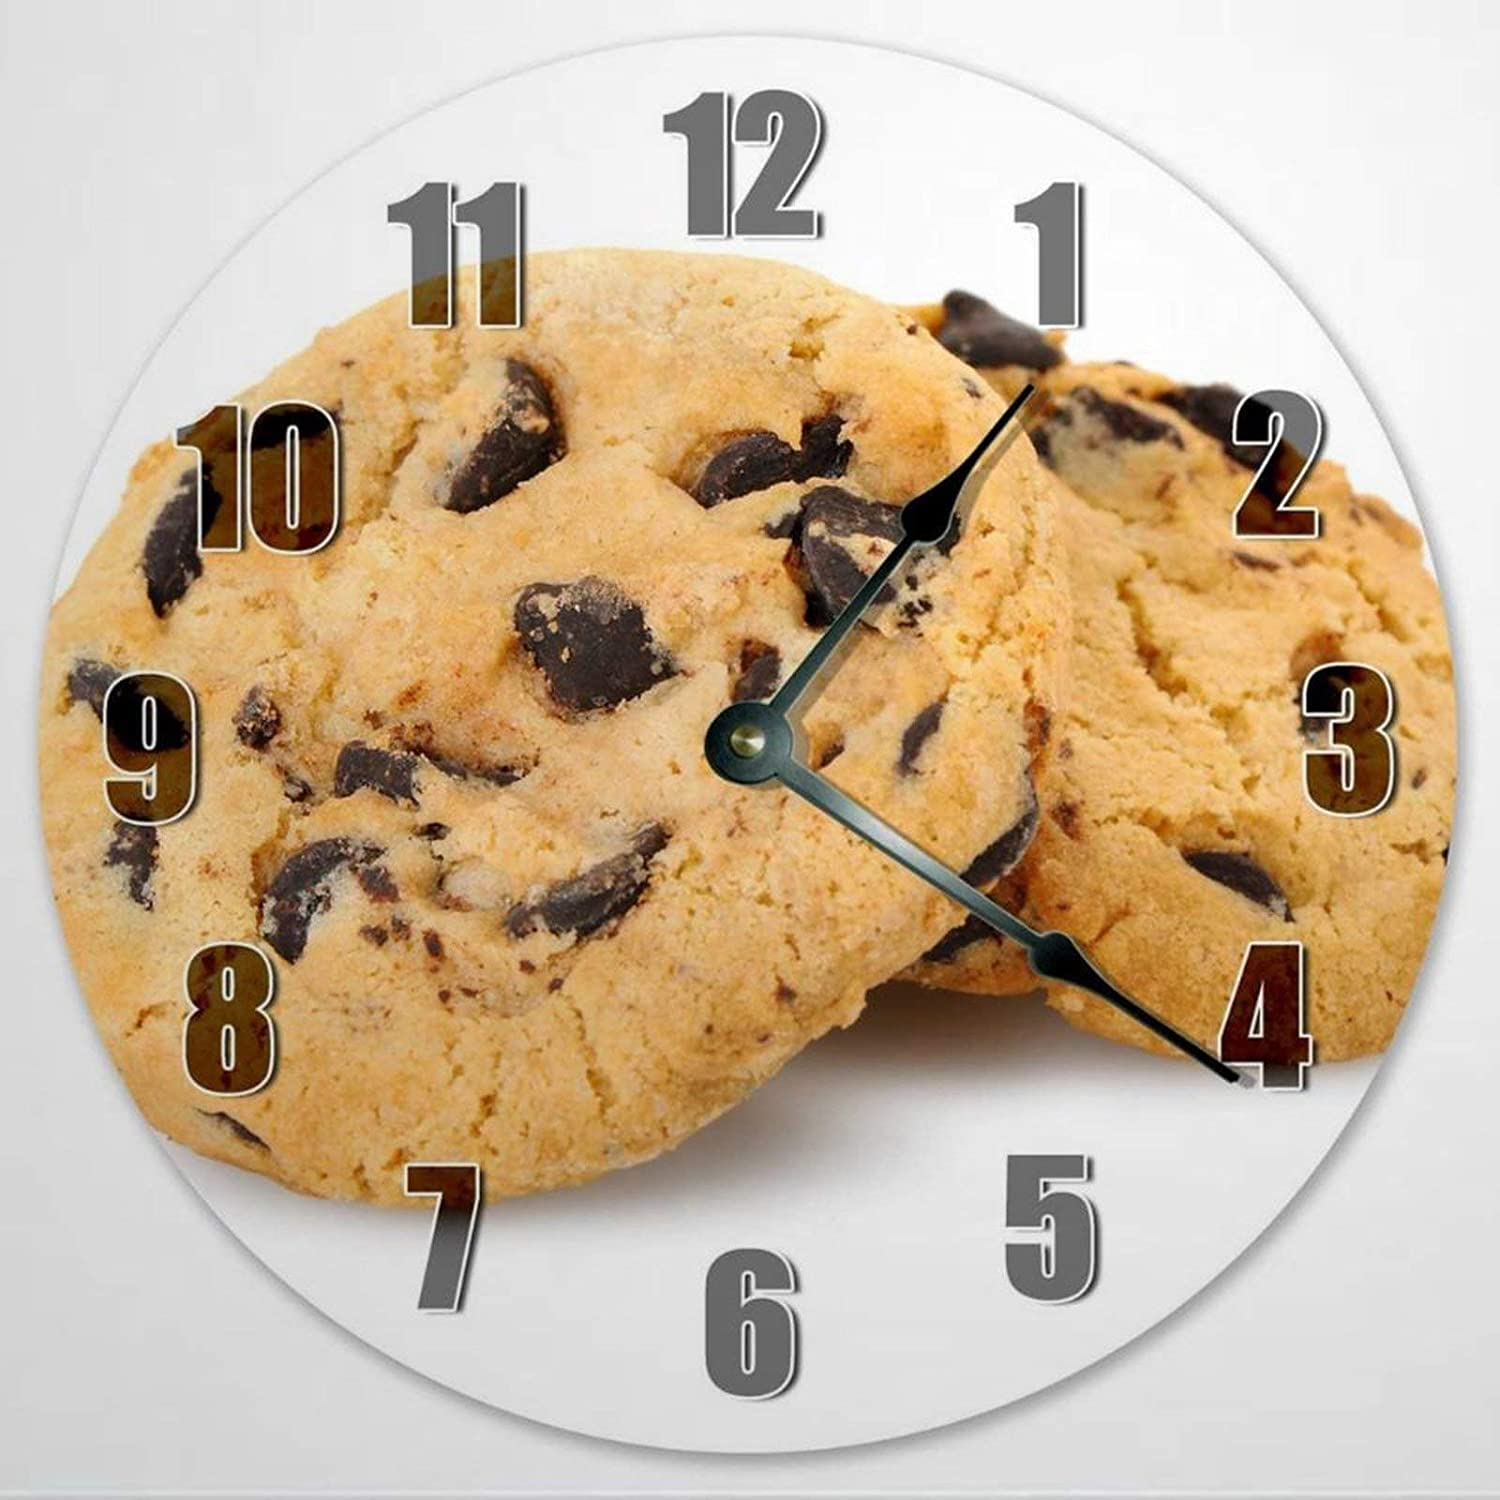 Chocolate Chip Cookie Wooden Wall Clock Silent Non Ticking Food Clock 12 Inch Battery Operated Round Easy to Read Kitchen Clock for Home Office School